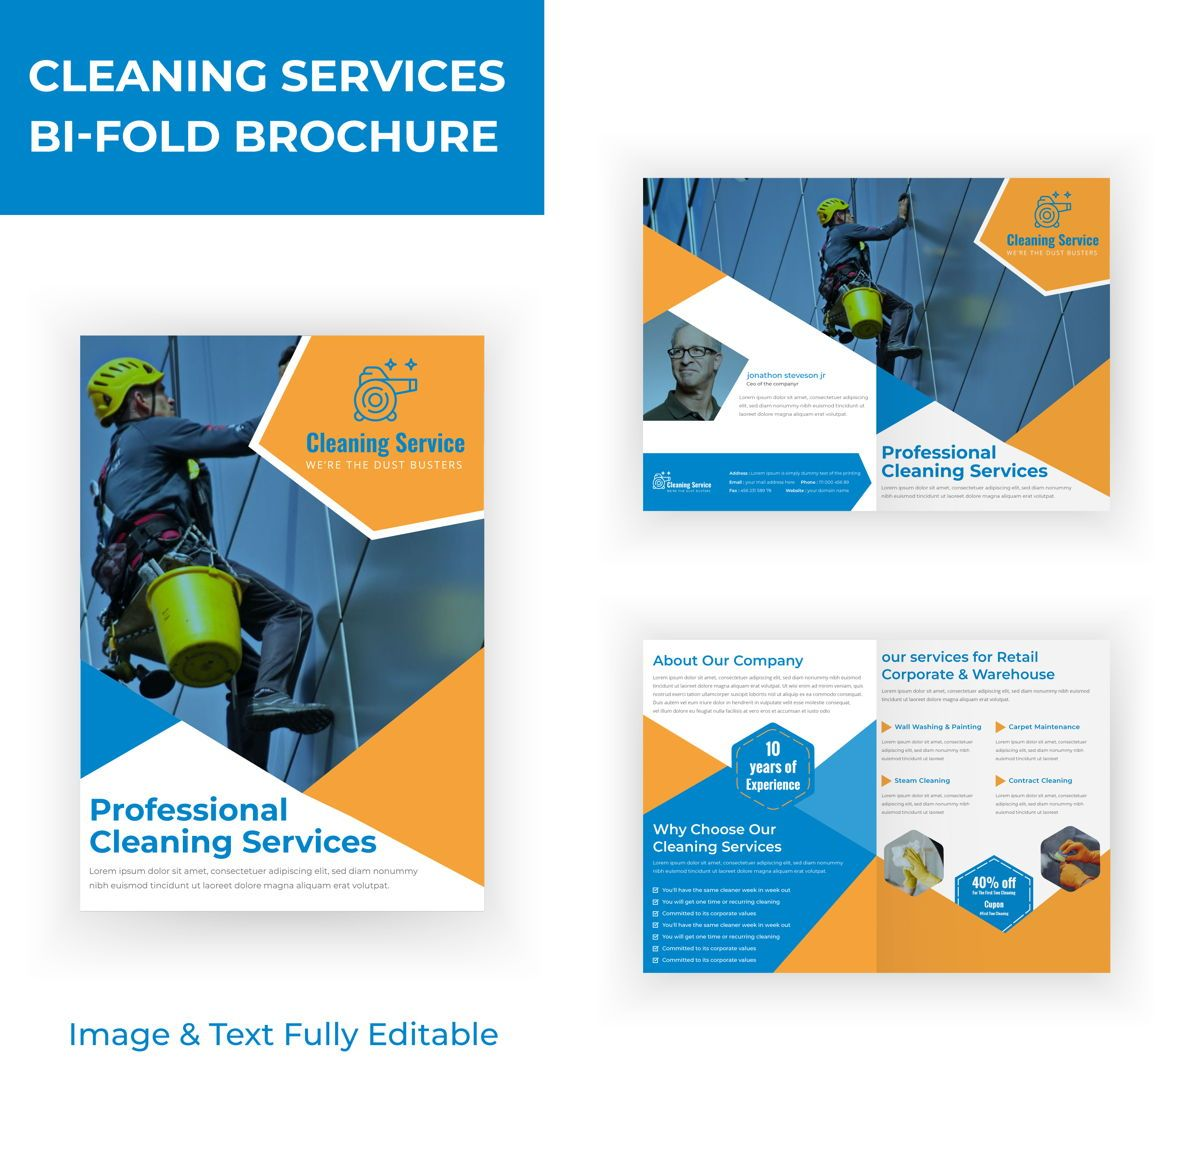 cleaning service Marketing material Design Brochure Template, 08830, Abstracto / Texturas — PoweredTemplate.com